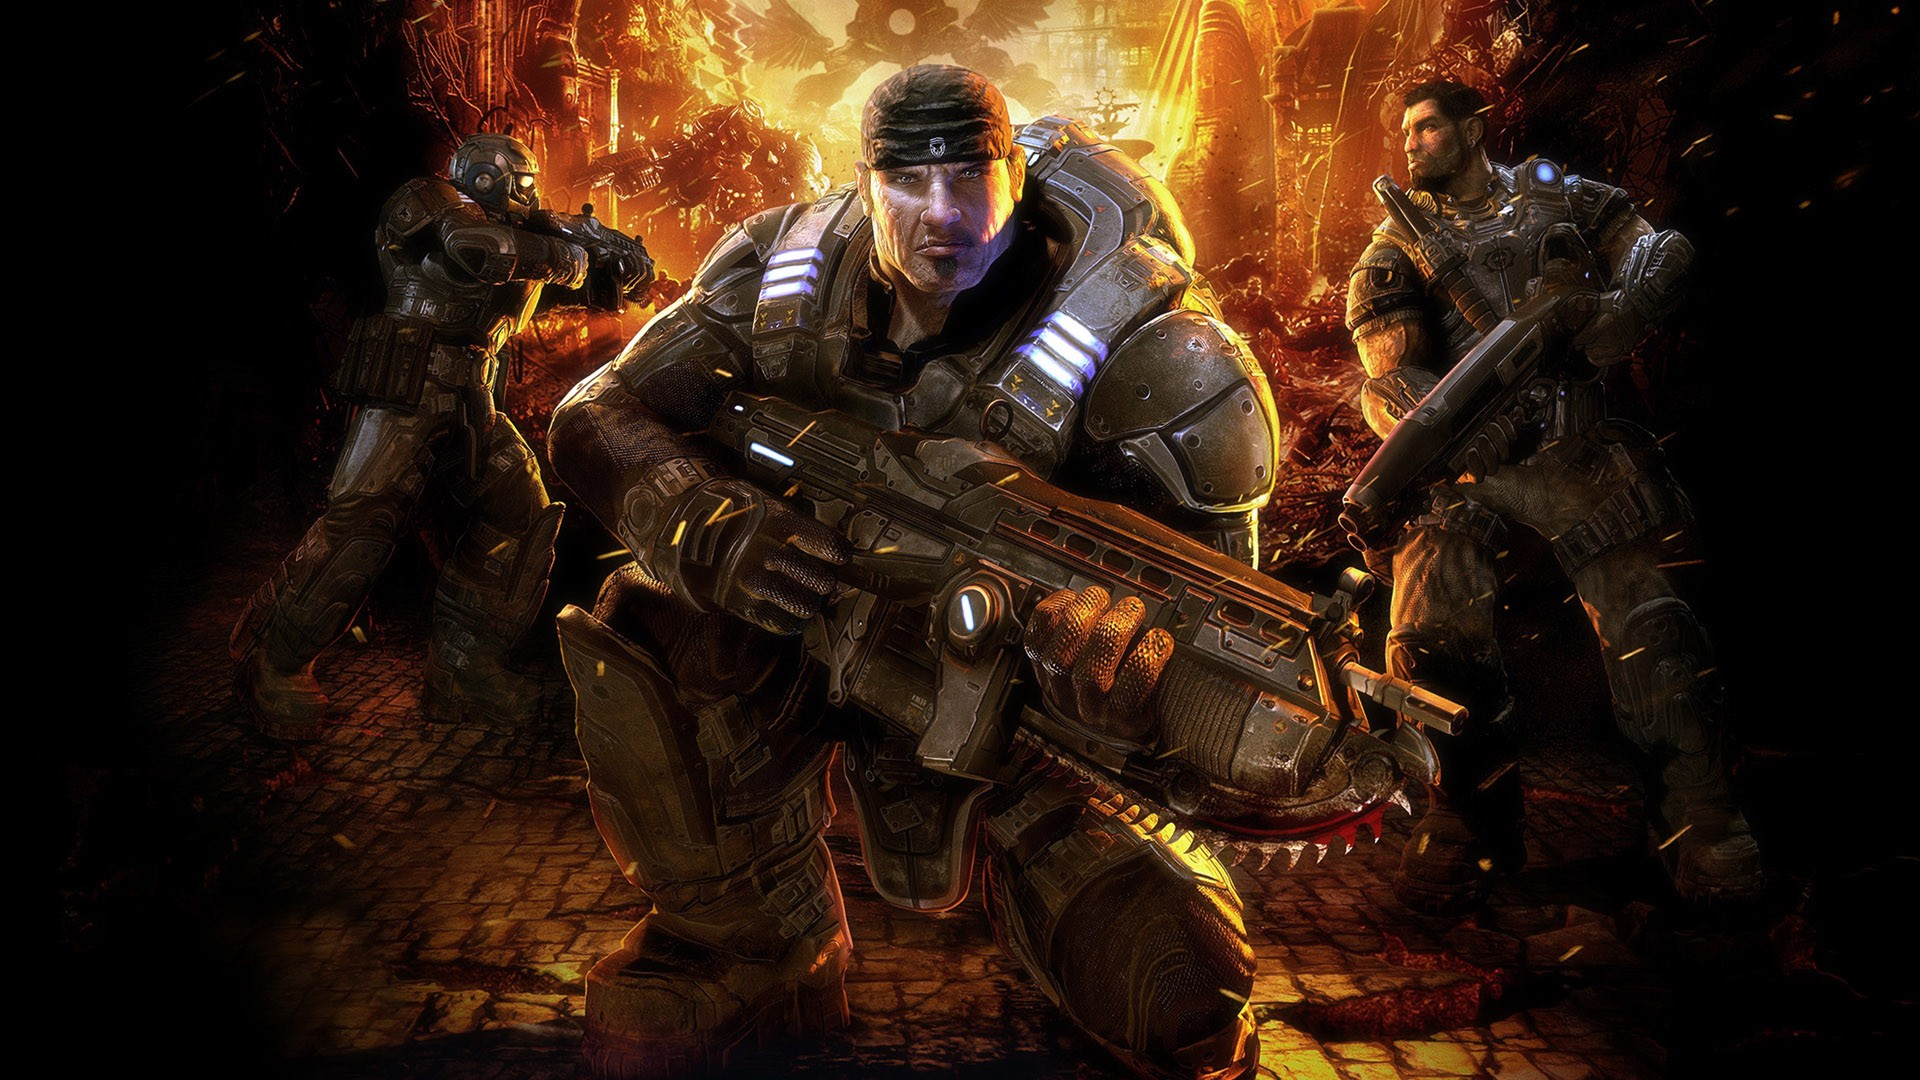 Арт к игре Gears of War